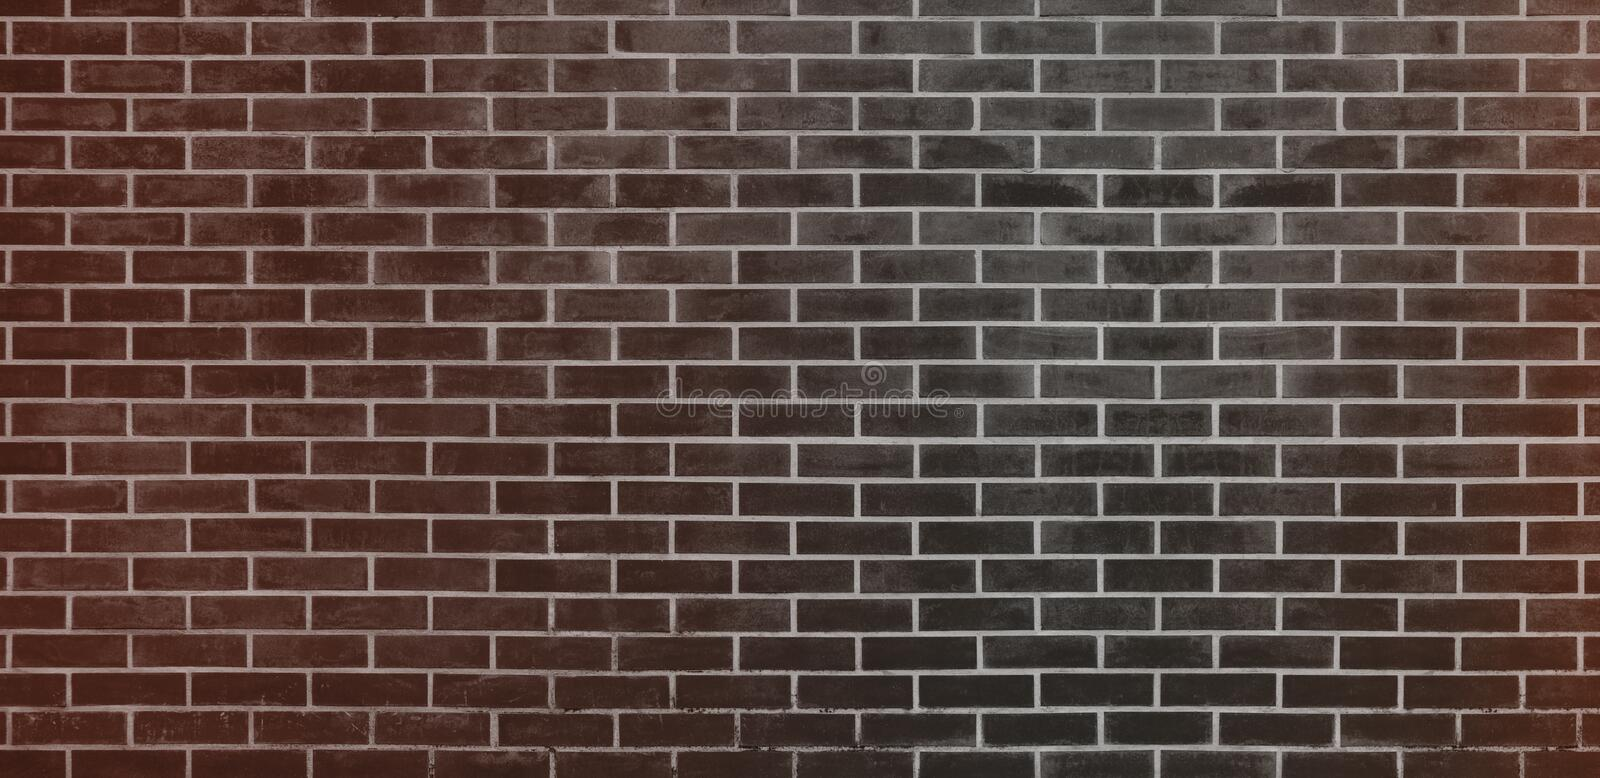 Brick wall, Black Brown bricks wall texture background for graphic design royalty free illustration